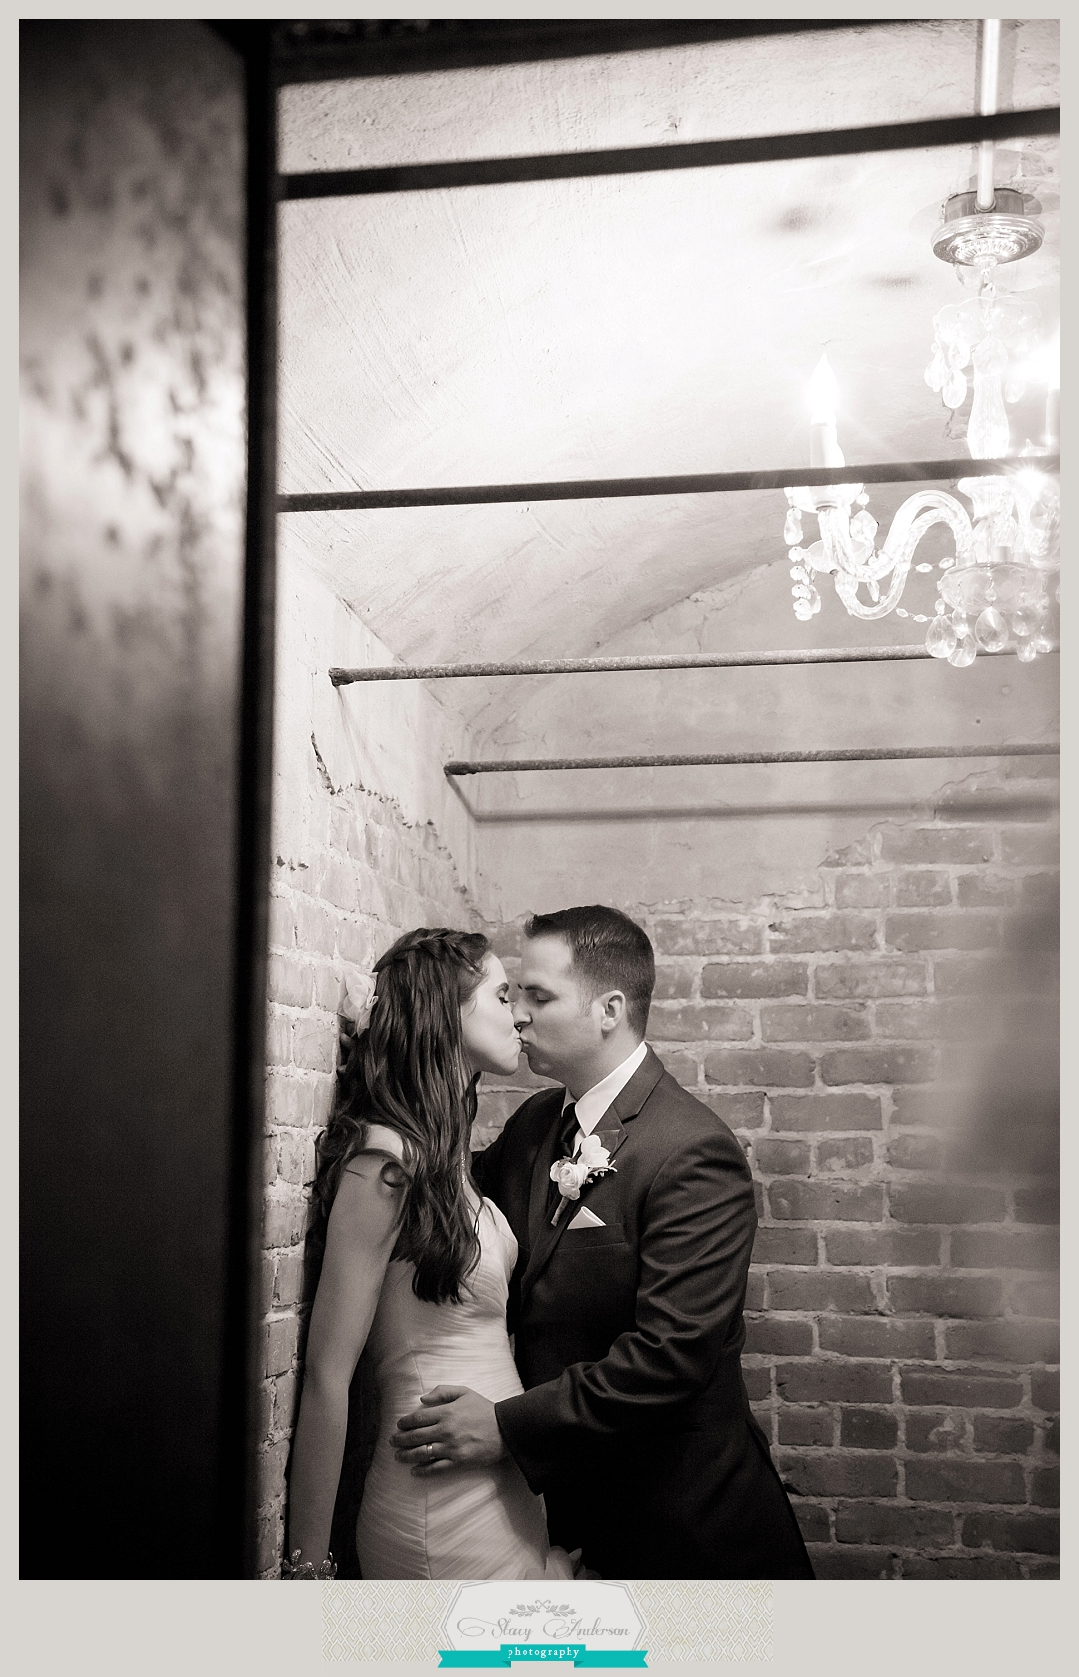 Butler's Courtyard Wedding Photographer (182)